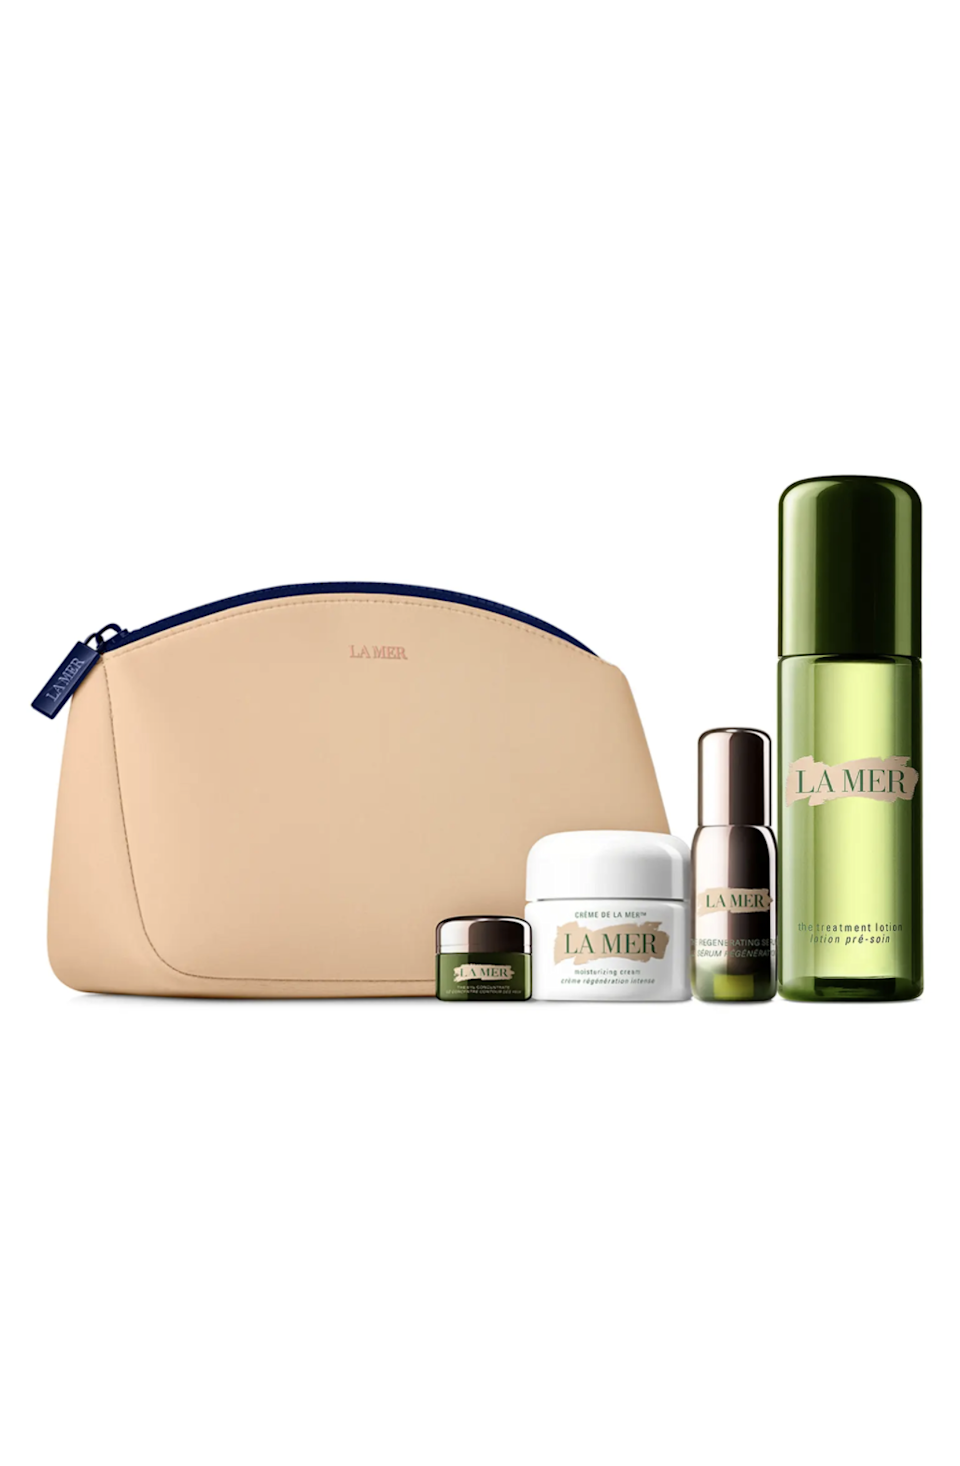 """<h2>La Mer Revitalizing Soothing Set</h2><br>Nothing says """"luxe"""" quite like La Mer, especially when encased in a chic travel pouch you'll want to use again and again. It's the ultimate gift for the skin-care superfan in your life. <br><br><strong>La Mer</strong> Revitalizing Soothing Set ($545 Value), $, available at <a href=""""https://go.skimresources.com/?id=30283X879131&url=https%3A%2F%2Fwww.nordstrom.com%2Fs%2Fla-mer-revitalizing-soothing-set-545-value-nordstrom-exclusive%2F5919475%3F"""" rel=""""nofollow noopener"""" target=""""_blank"""" data-ylk=""""slk:Nordstrom"""" class=""""link rapid-noclick-resp"""">Nordstrom</a>"""